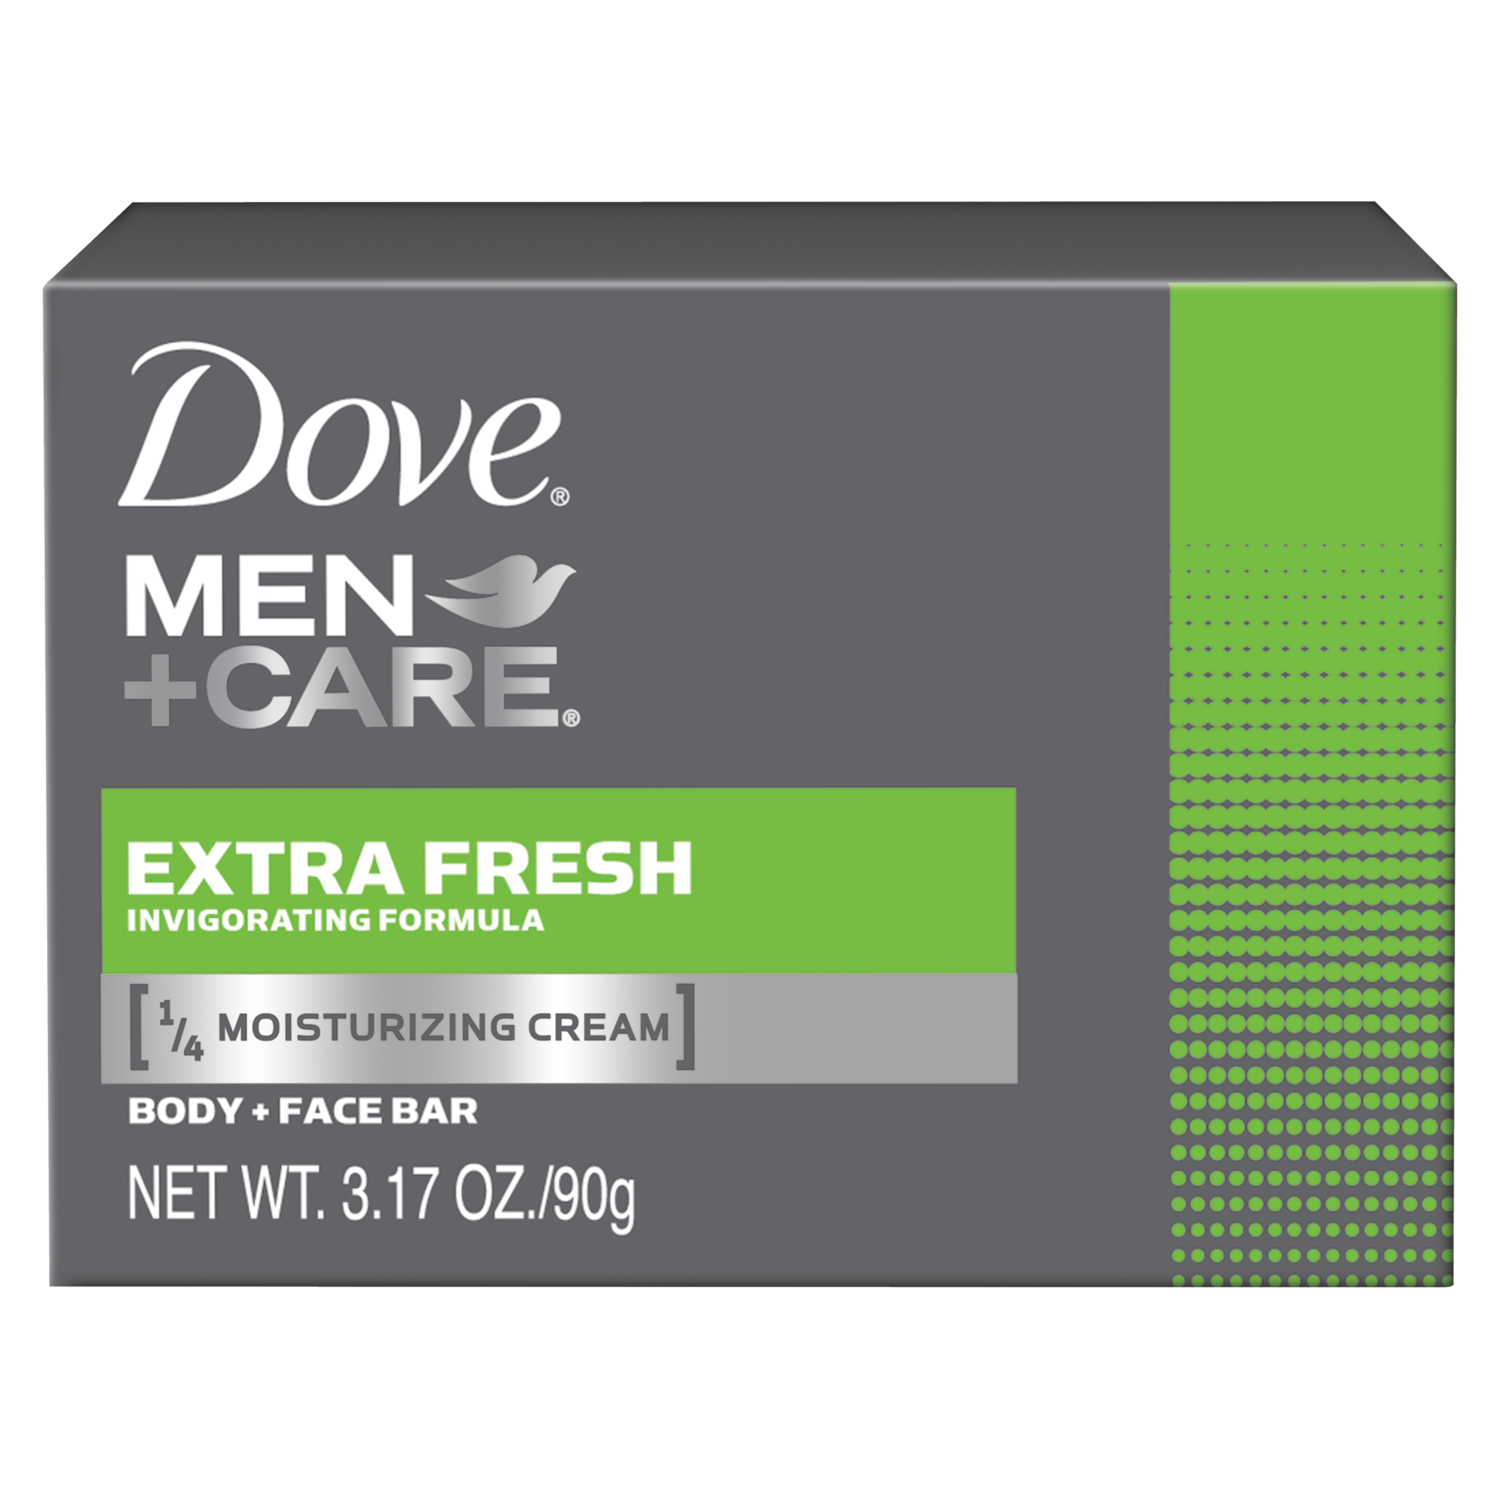 Dove Clinical Protection Antiperspirant Deodorant Cool Essentials oz combines our strongest antiperspirant protection with the refreshing scent of cucumber and green tea.